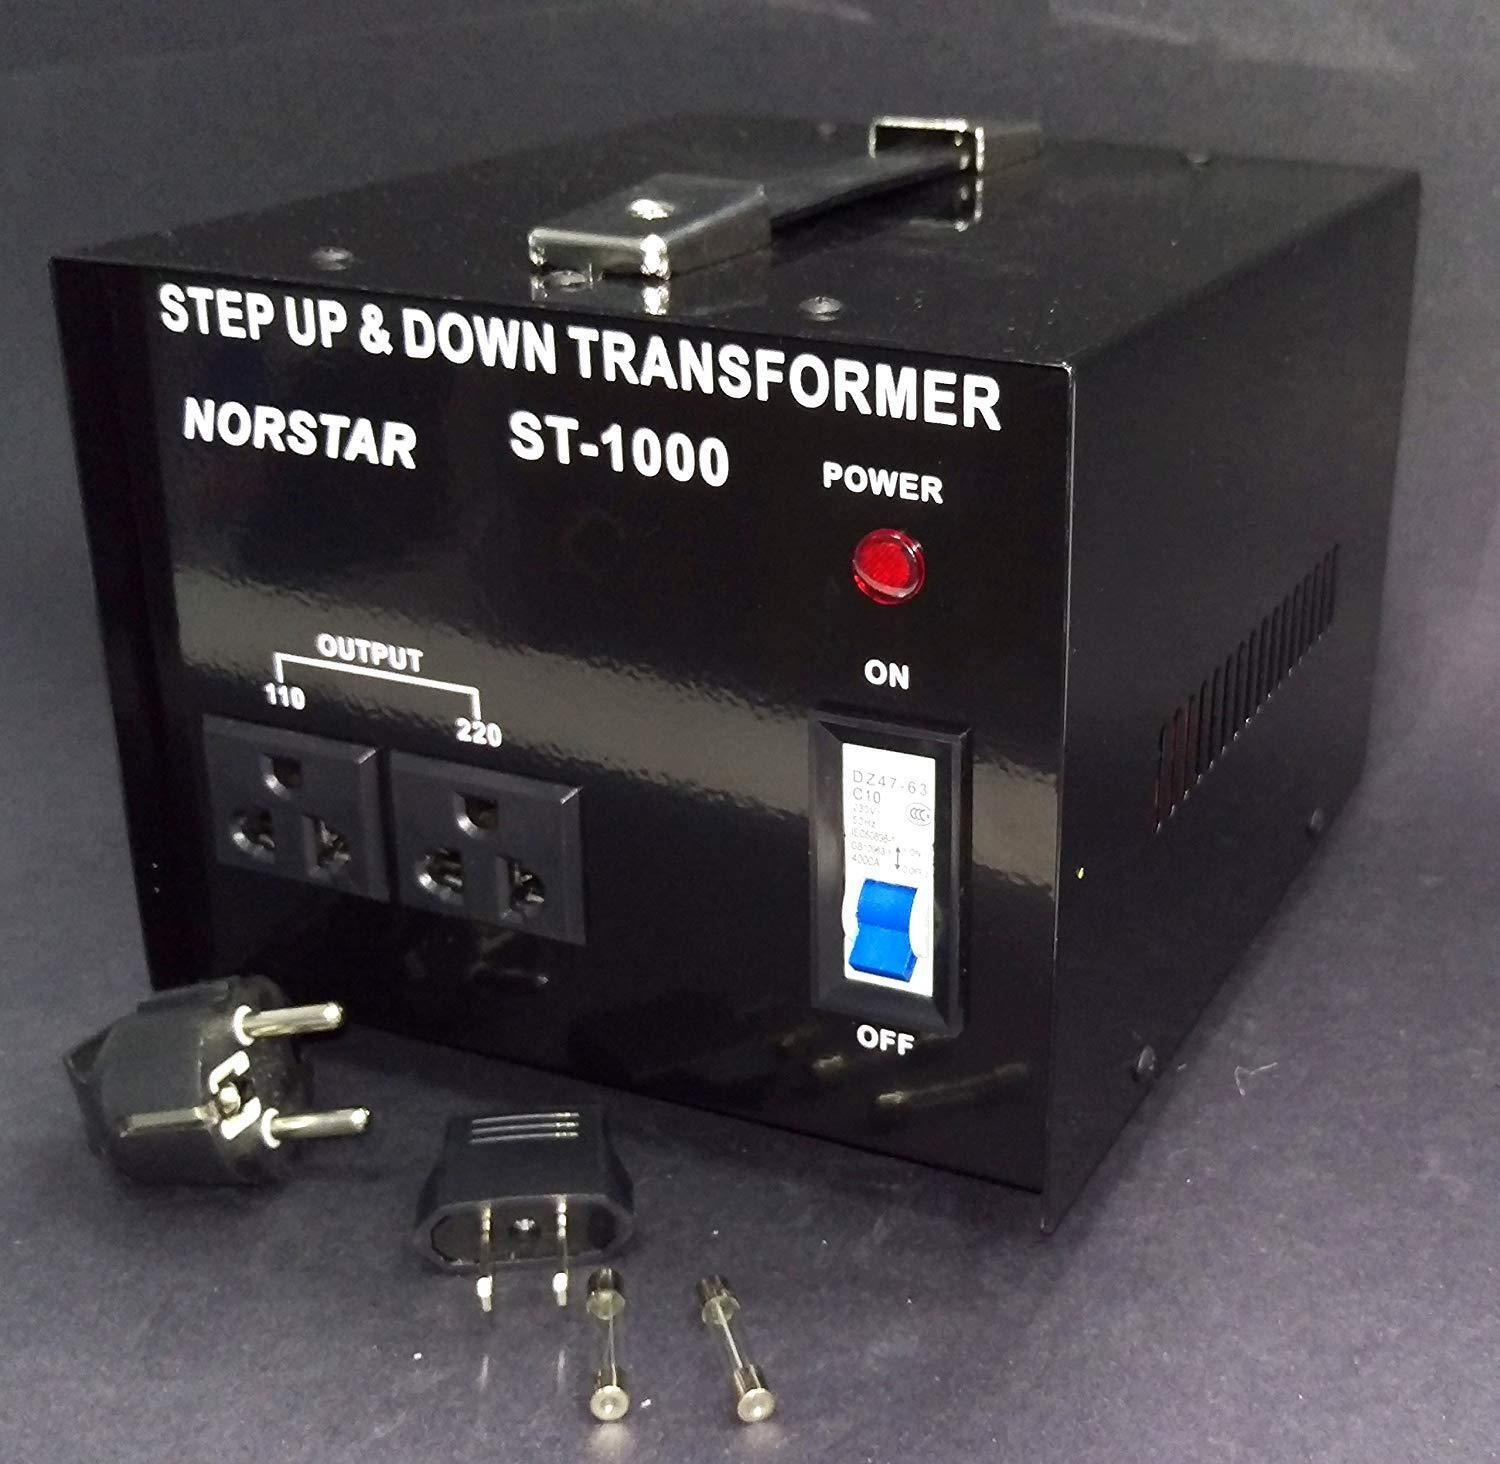 как выглядит 1000 watt Step Up Step Down Voltage Transformer Converter With Fuse Protection - фото